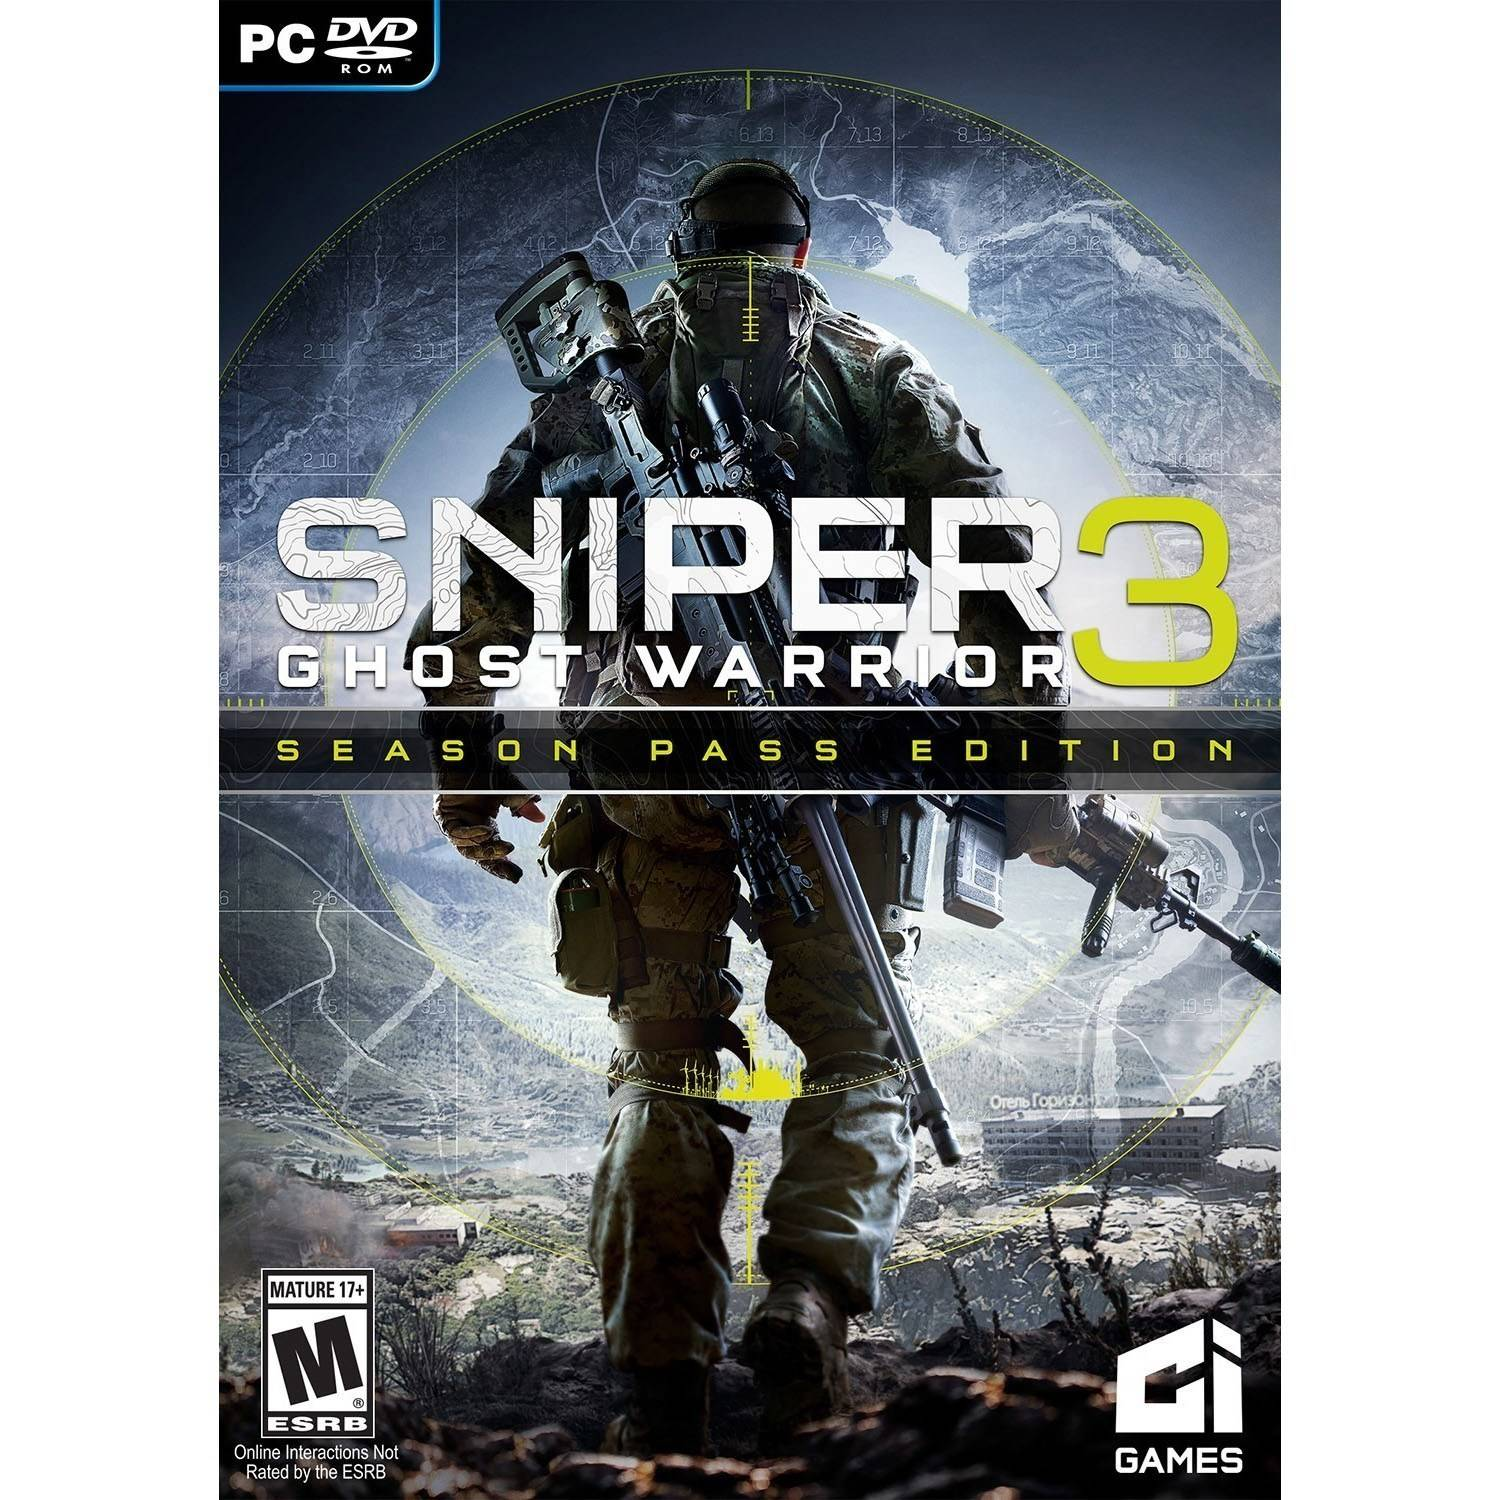 Sniper Ghost Warrior 3 Season Pass Edition Day 1 (PC)